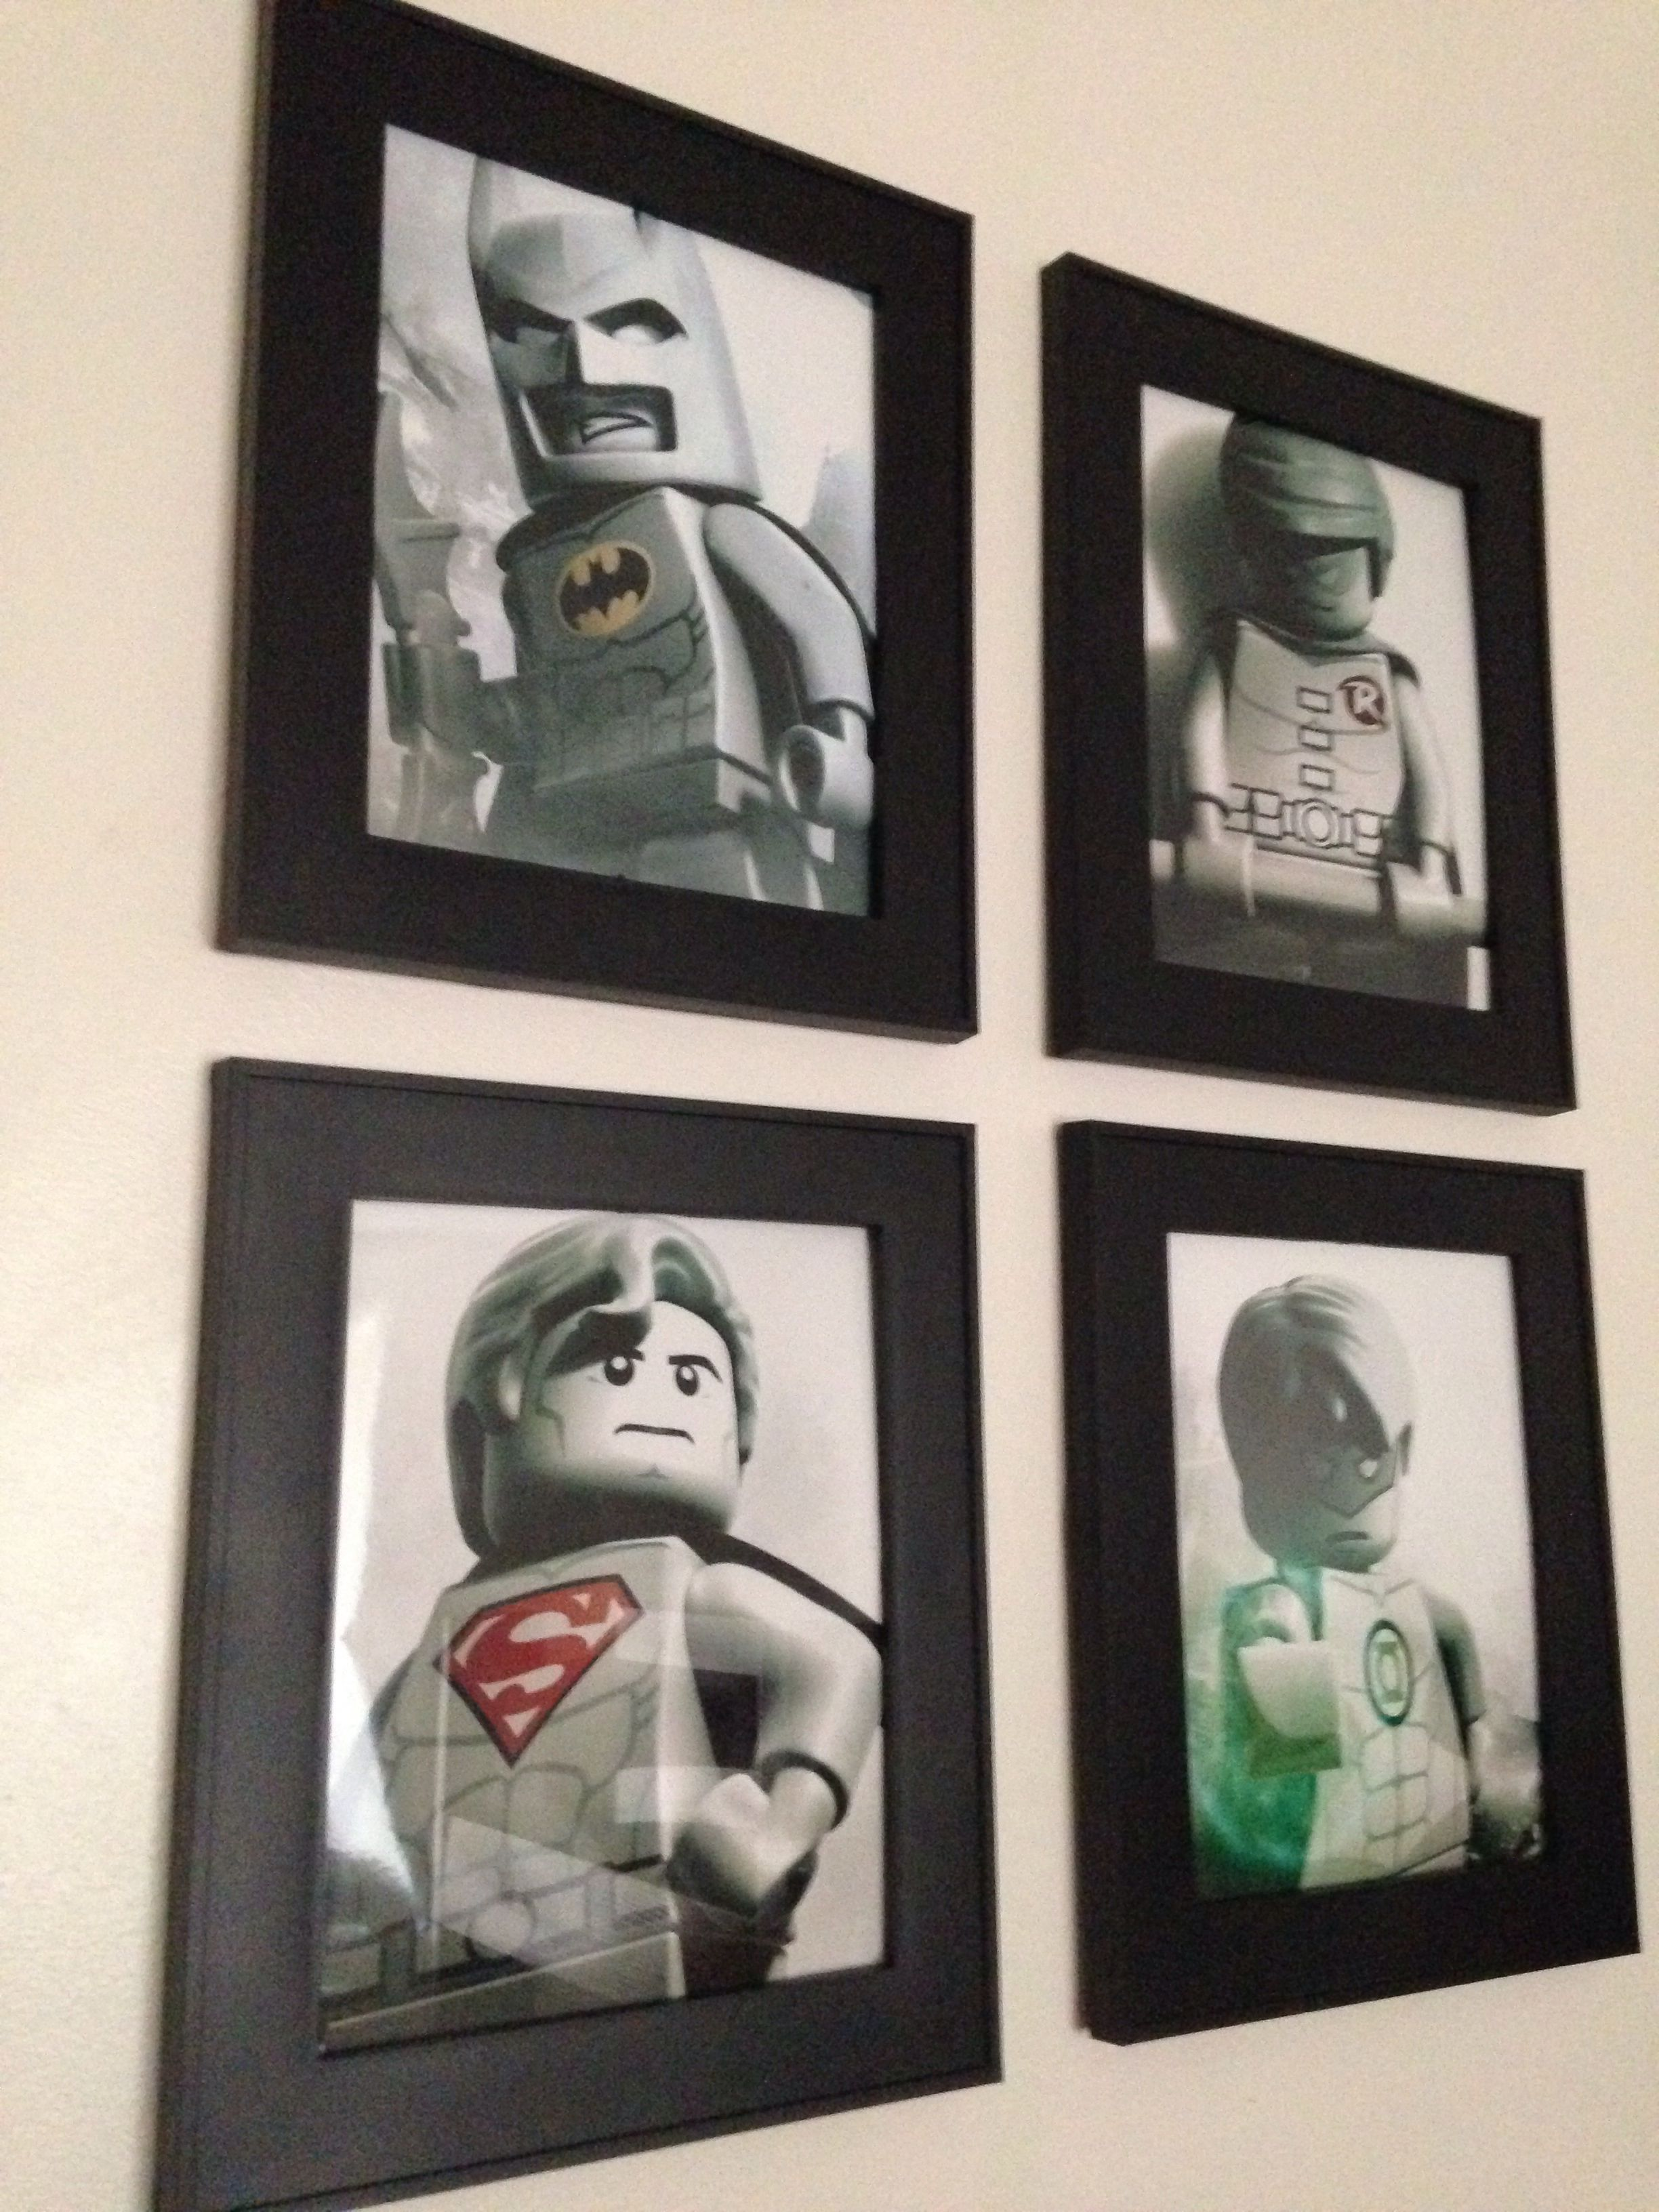 Lego room art | For the Home | Pinterest | Kinderzimmer, Jungszimmer ...